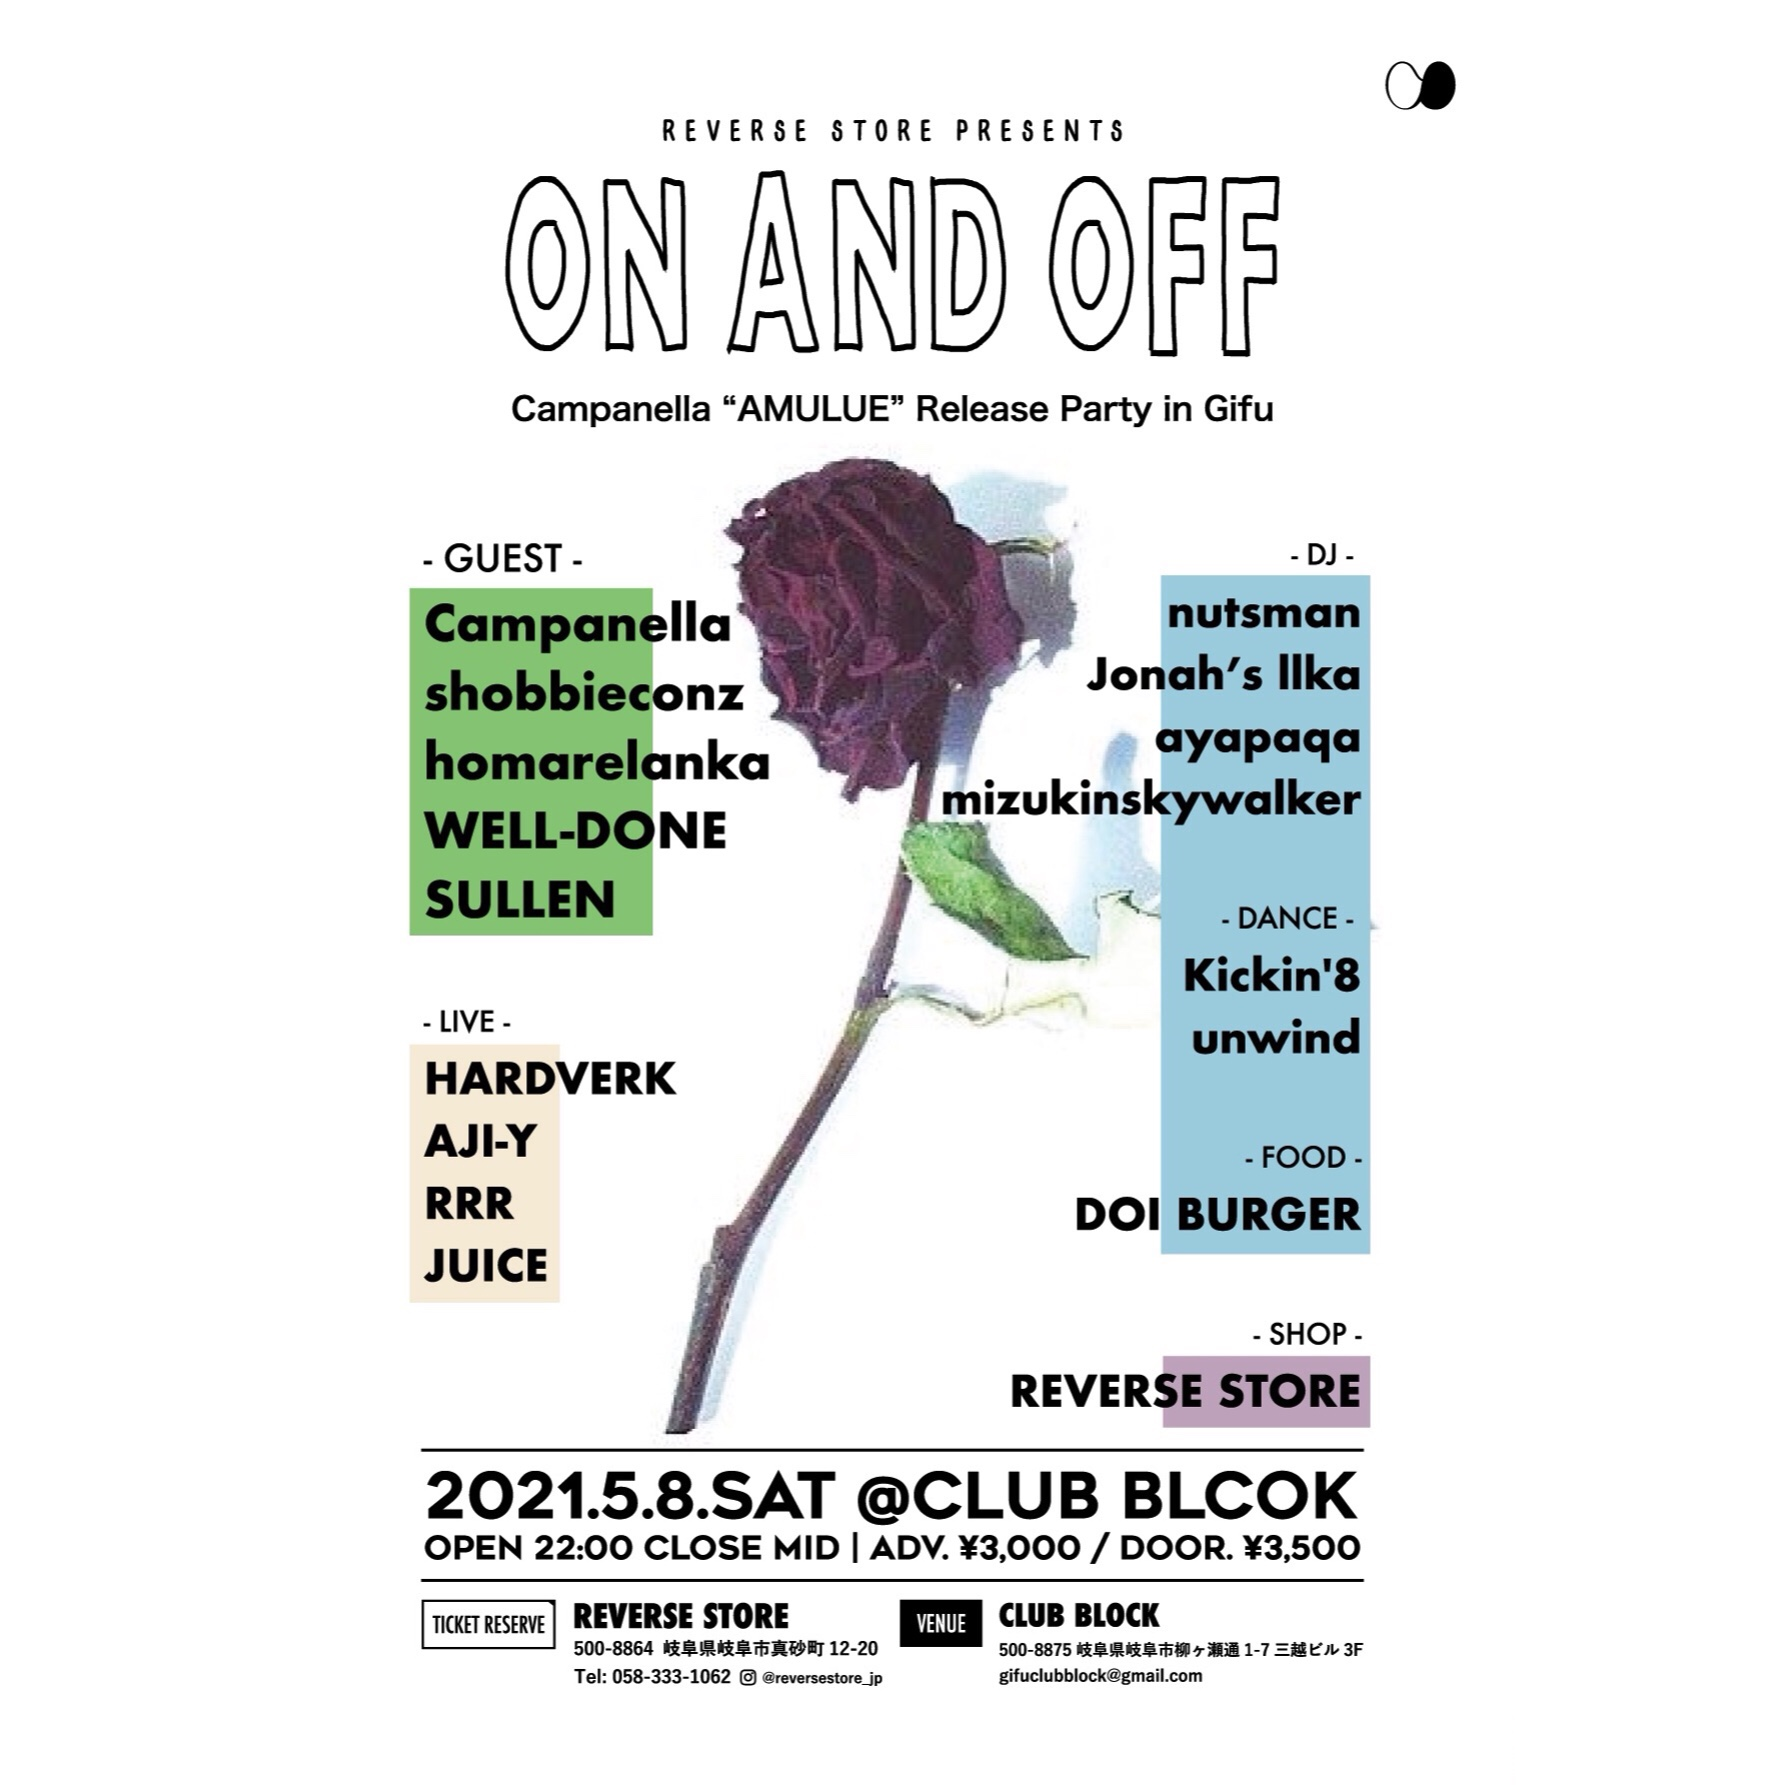 2021.5.8 (sat) ON AND OFF